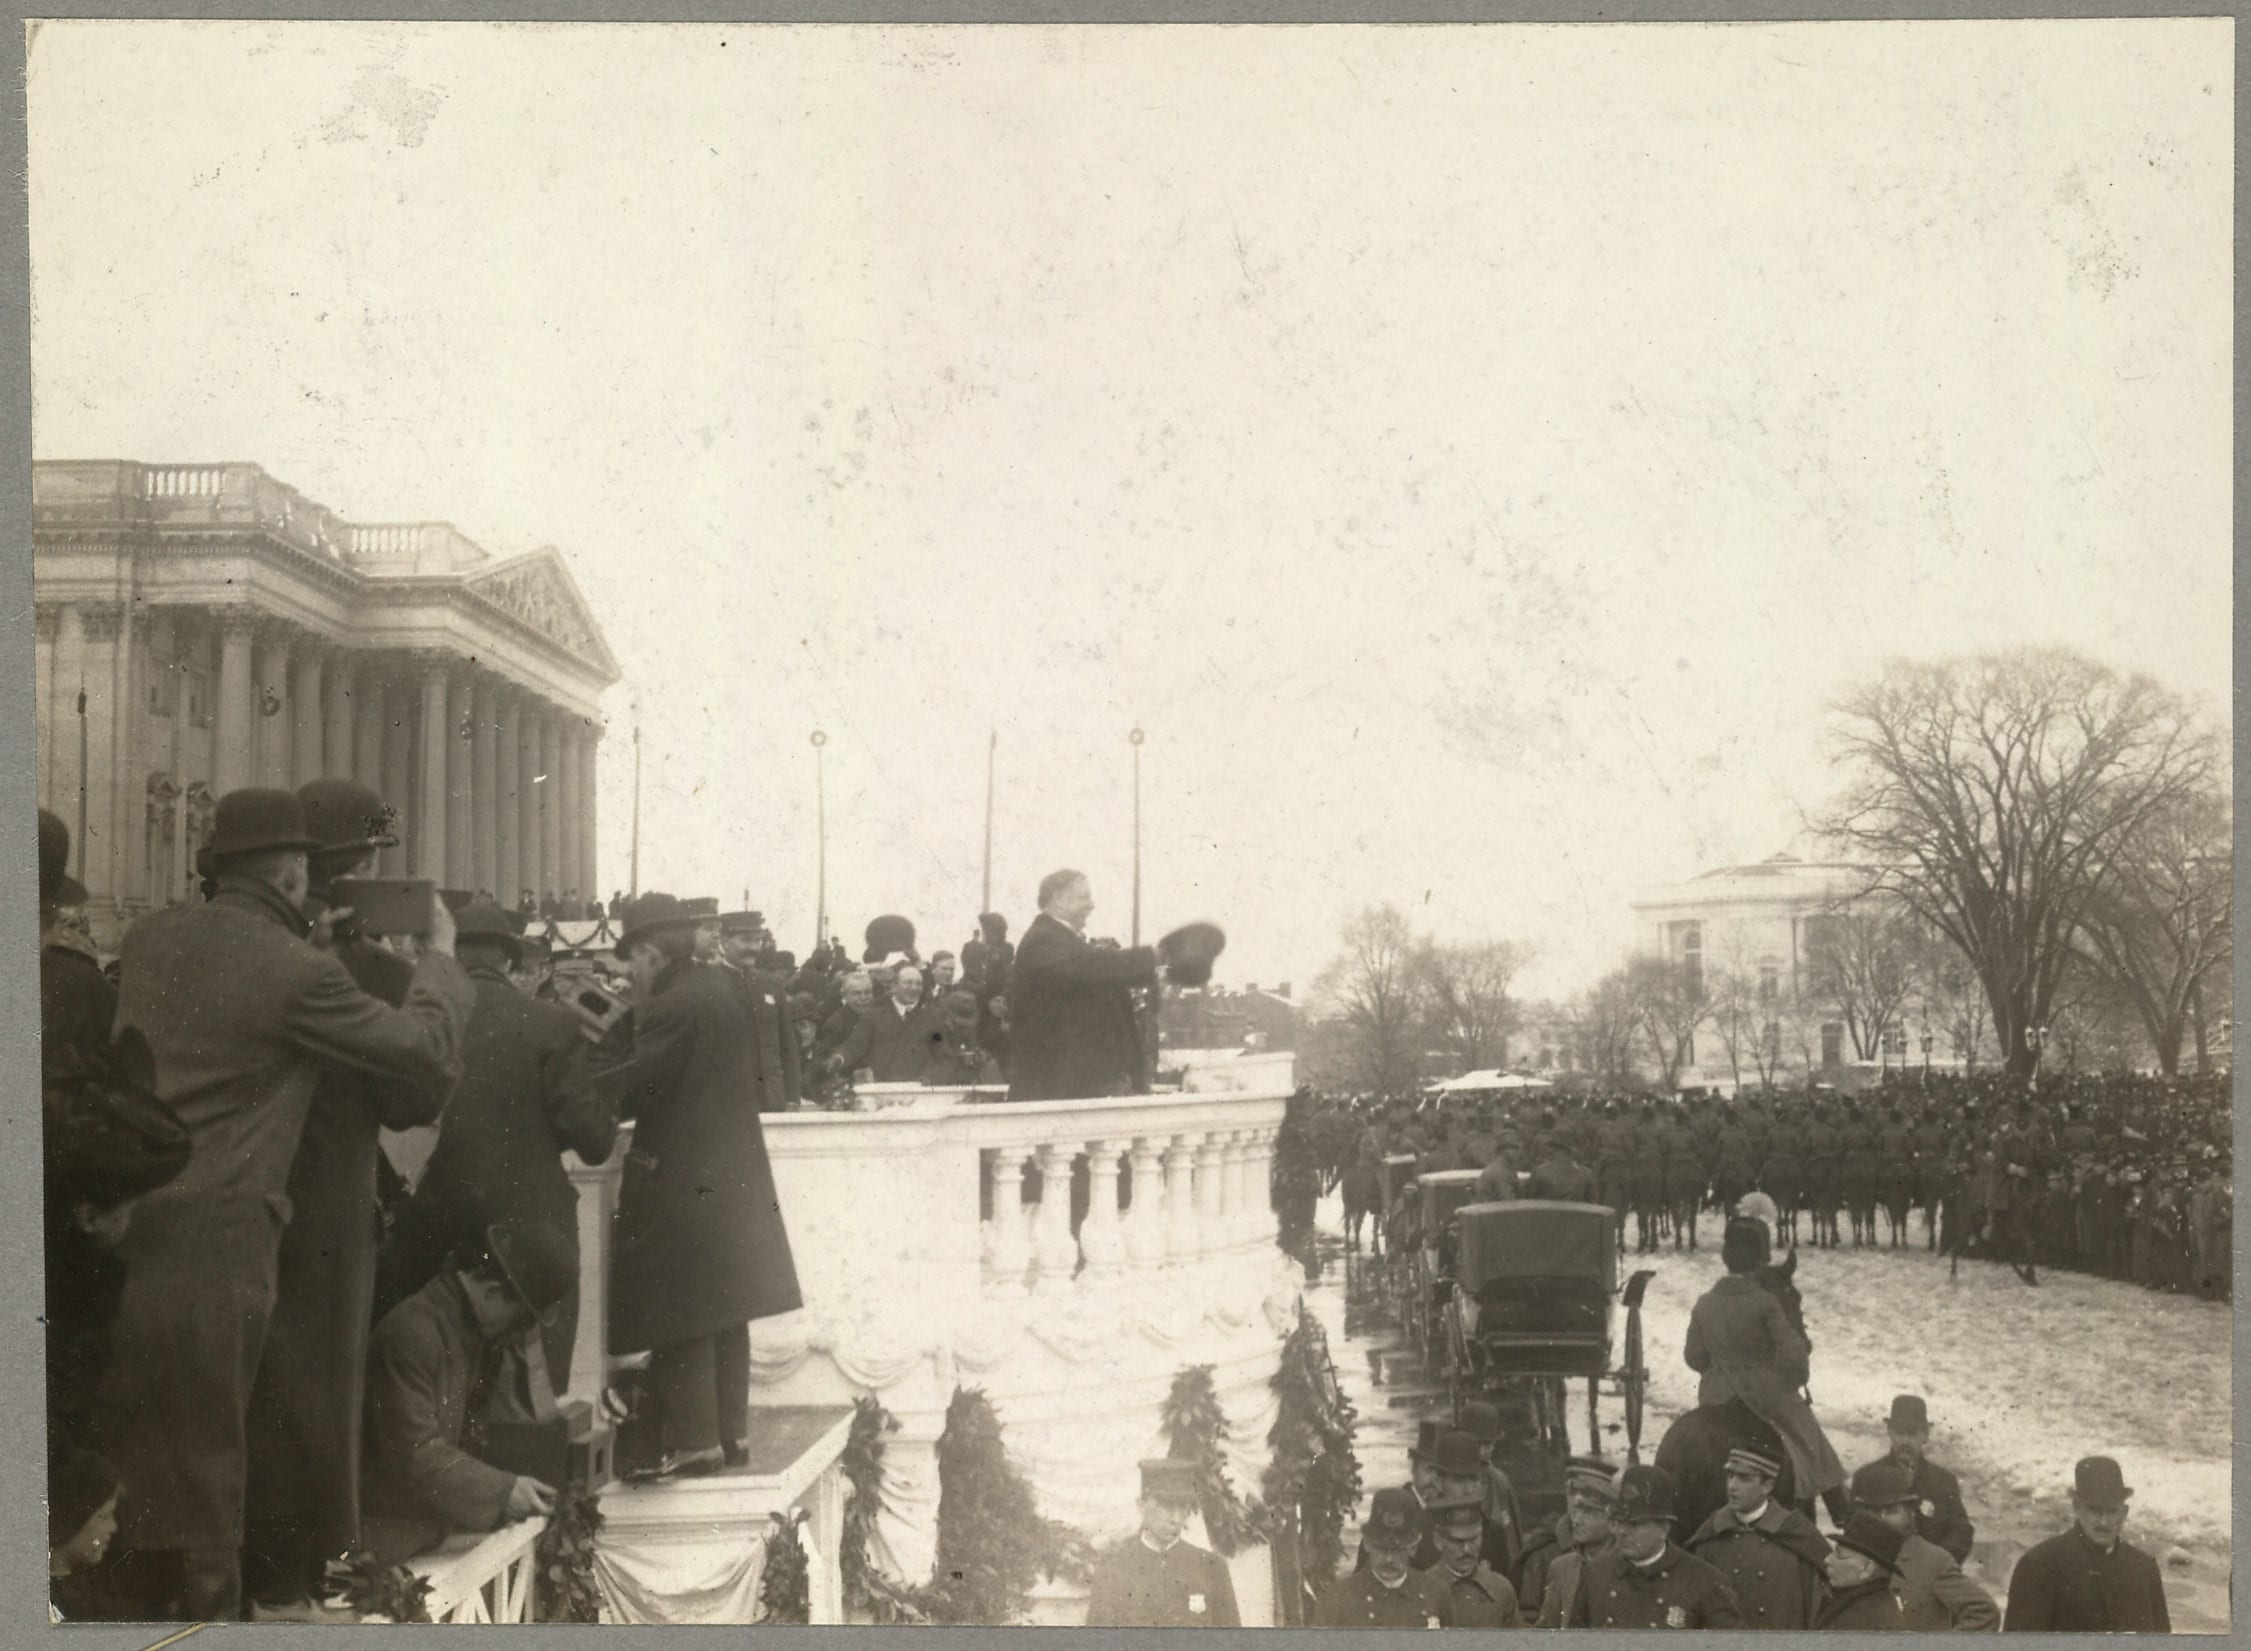 Side view of Taft on balustrade in snow, with top hat in hand, gesturing to crowd before him on grounds of east front of Capitol, with photographers at left.